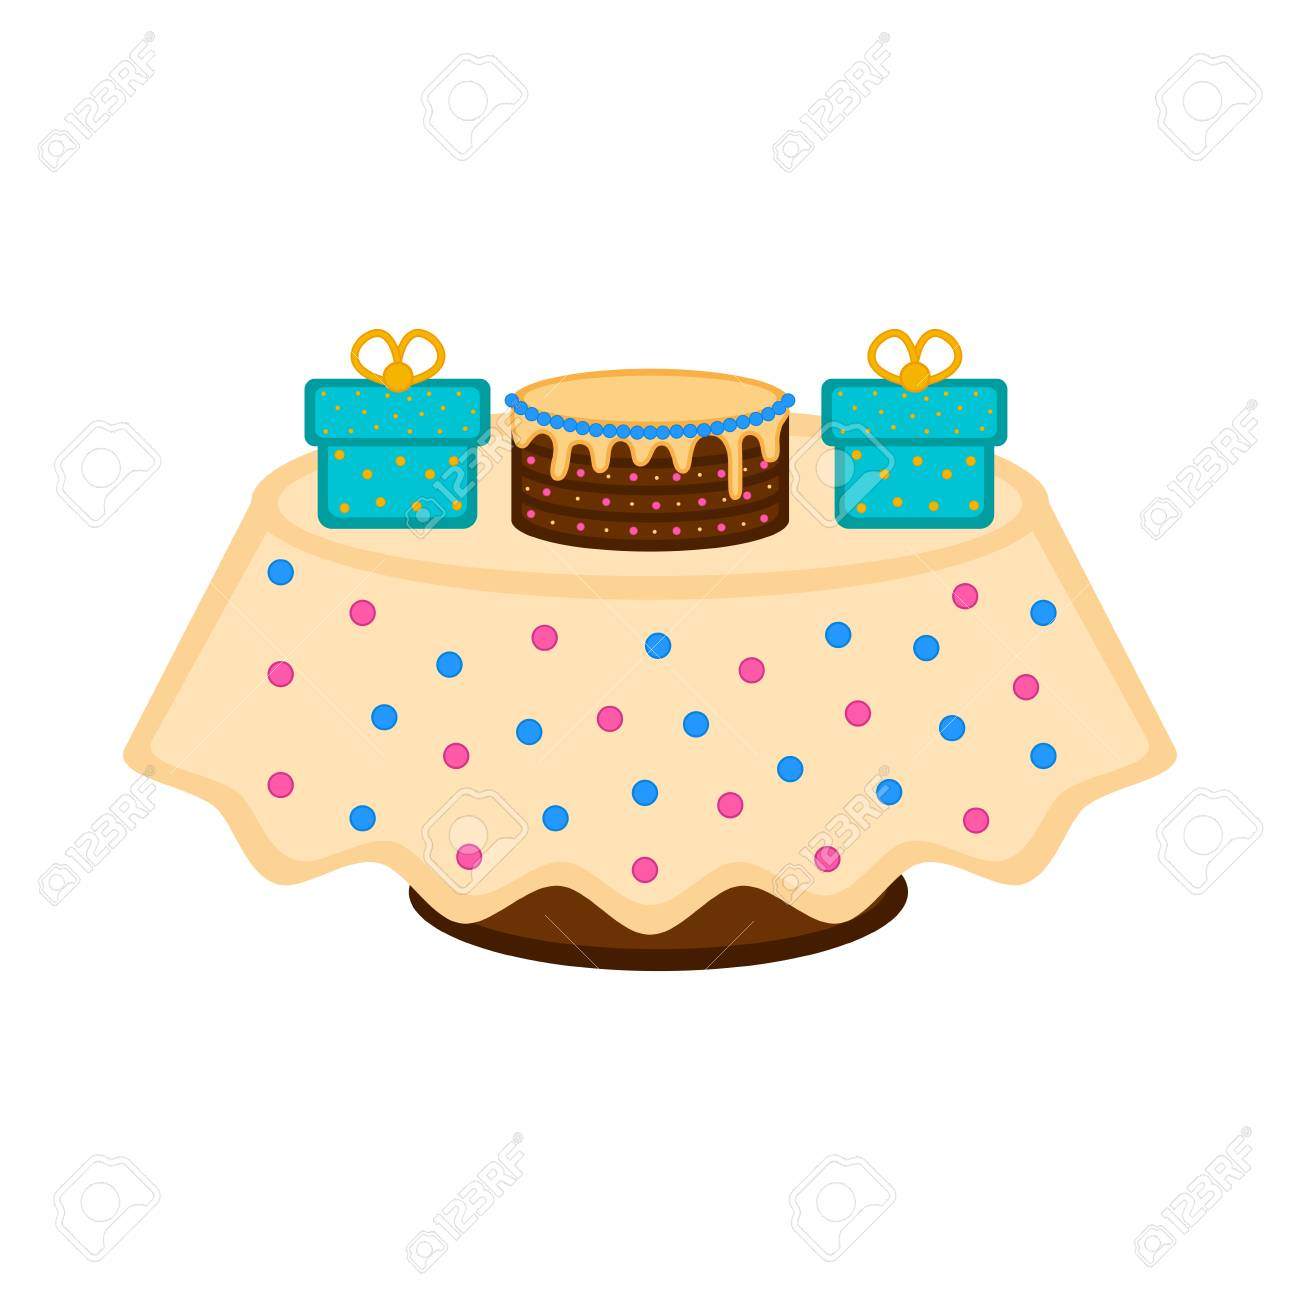 Birthday Cake On A Table With Presents Stock Vector